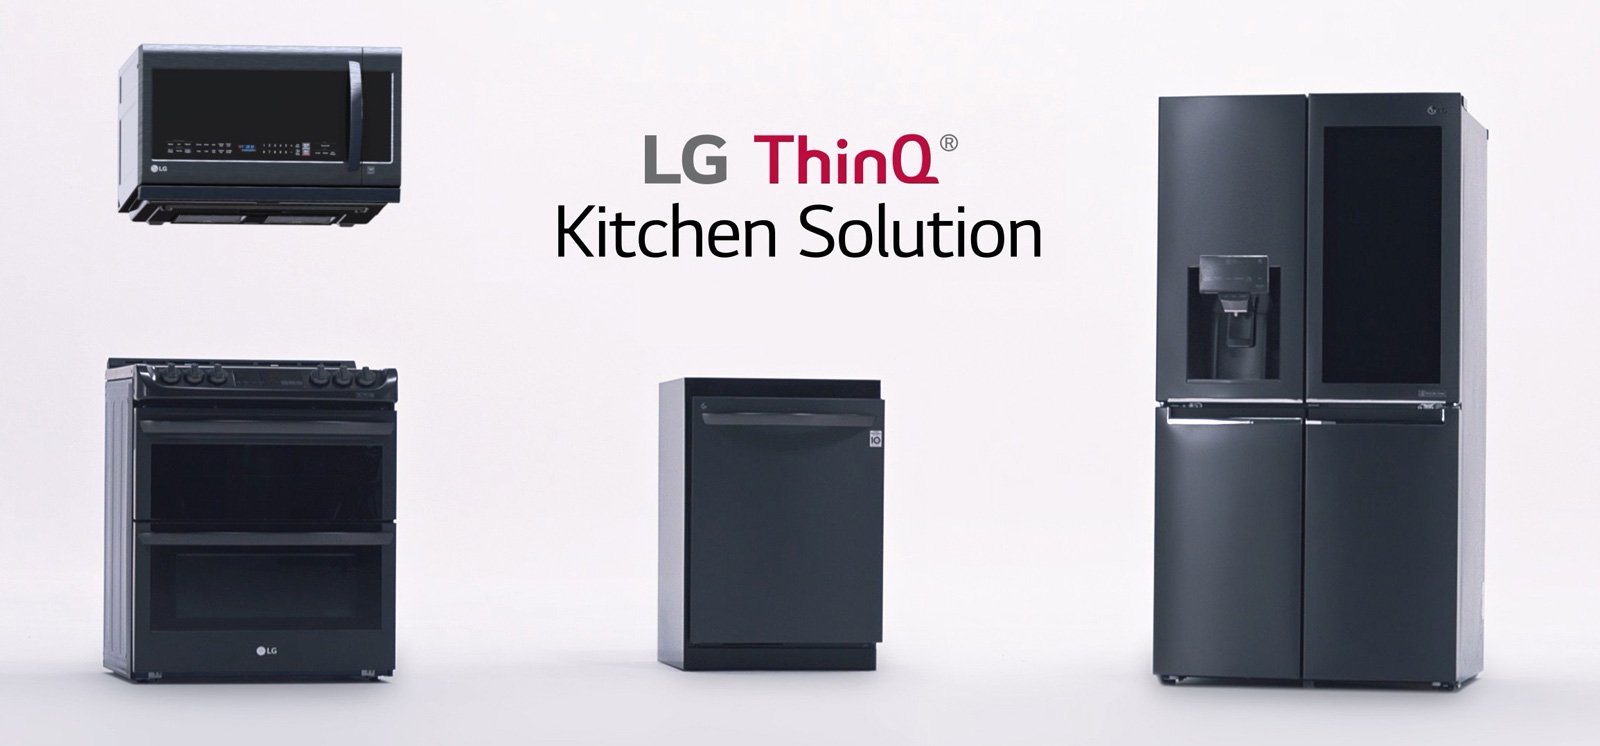 LG ThinQ Kitchen